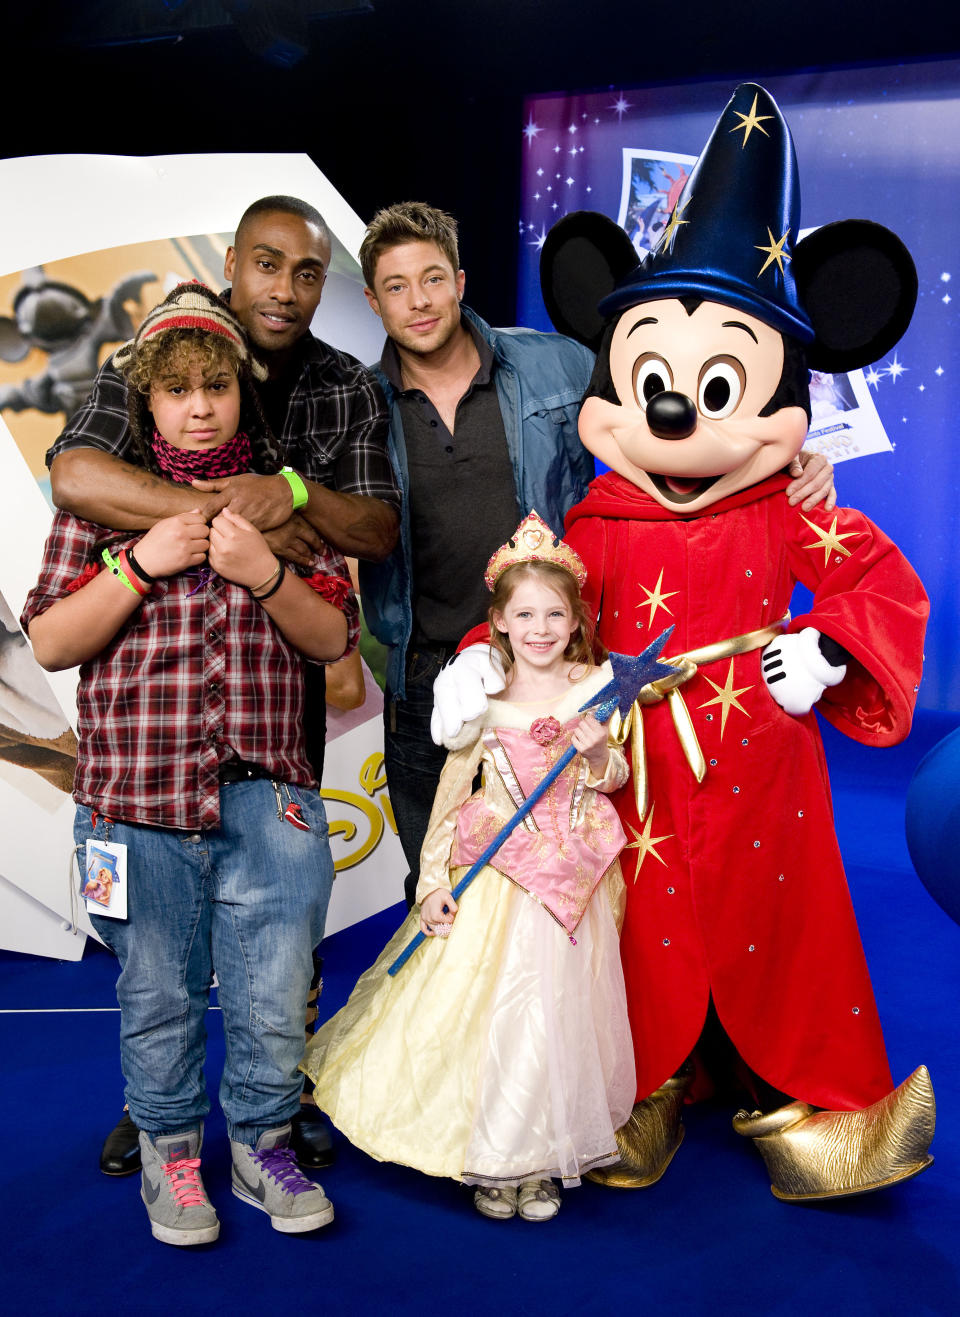 Simon Webb and his daughter Alanah and Duncan James and his daughter Tianie enjoy the Magical Moments Festival at Disneyland, Paris.